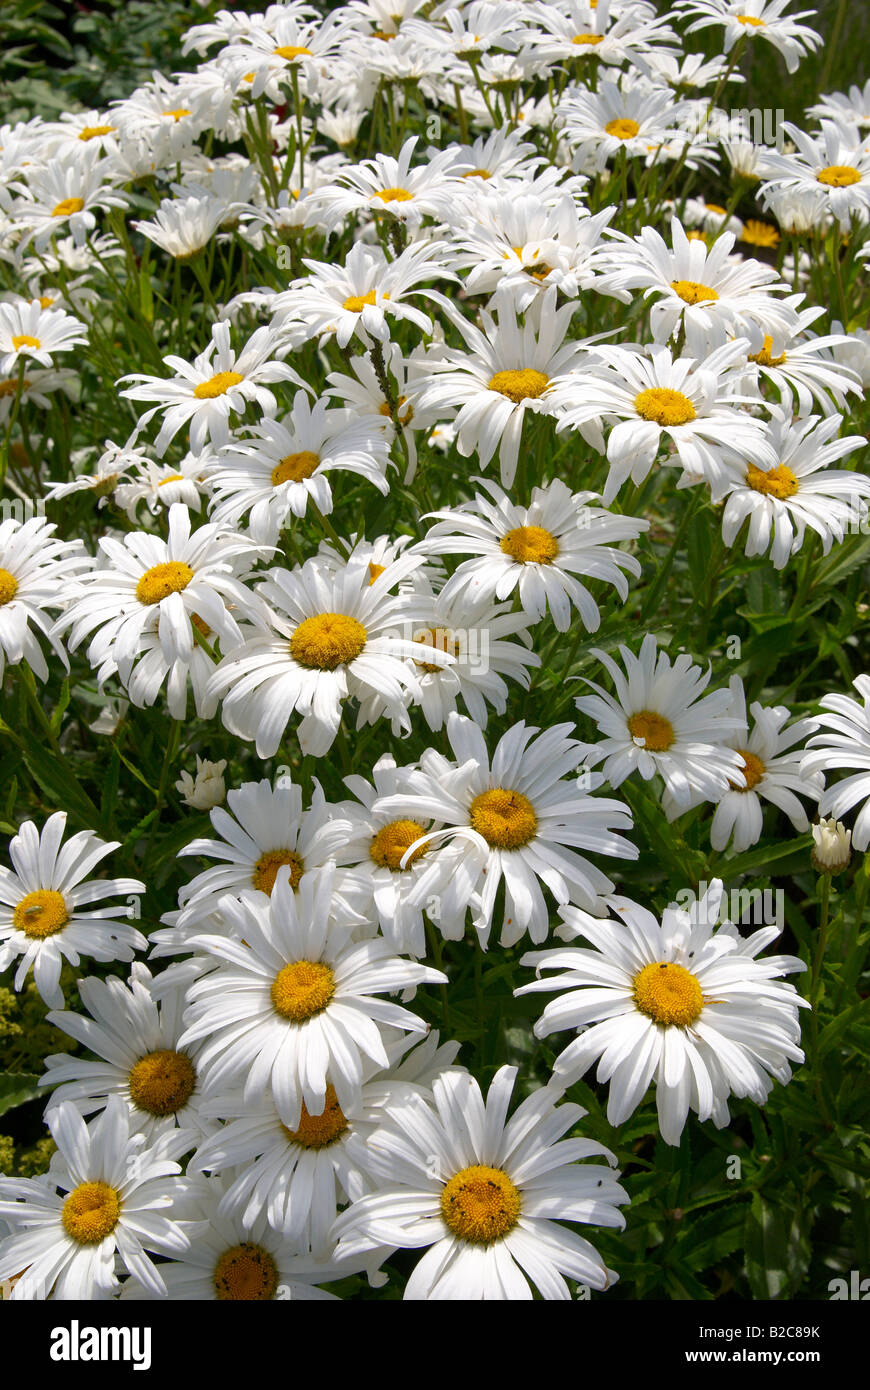 England leucantheum white flower flowers daisy stock photos search results for england leucantheum white flower flowers daisy stock photos and images izmirmasajfo